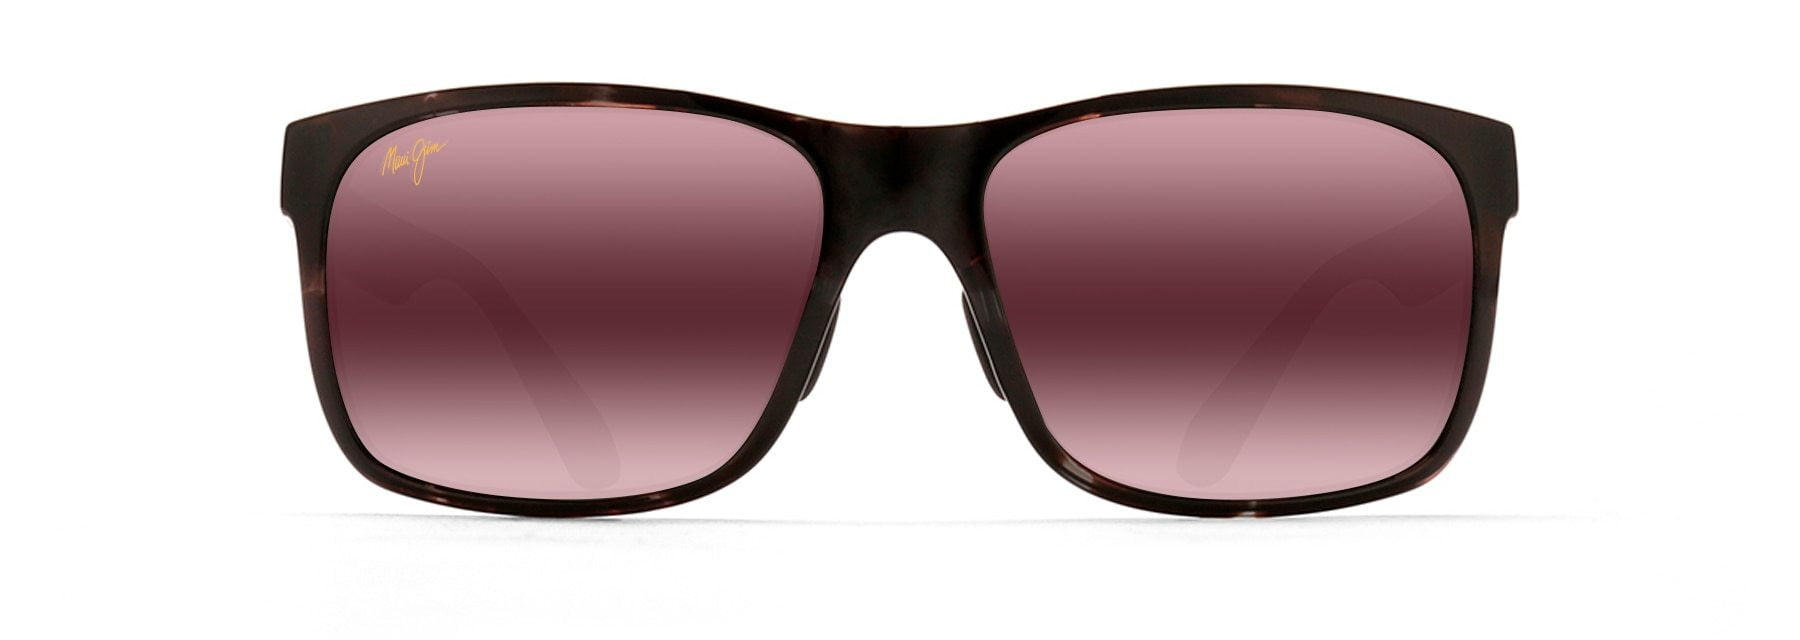 MyMaui Red Sands MM432-014 Sunglasses